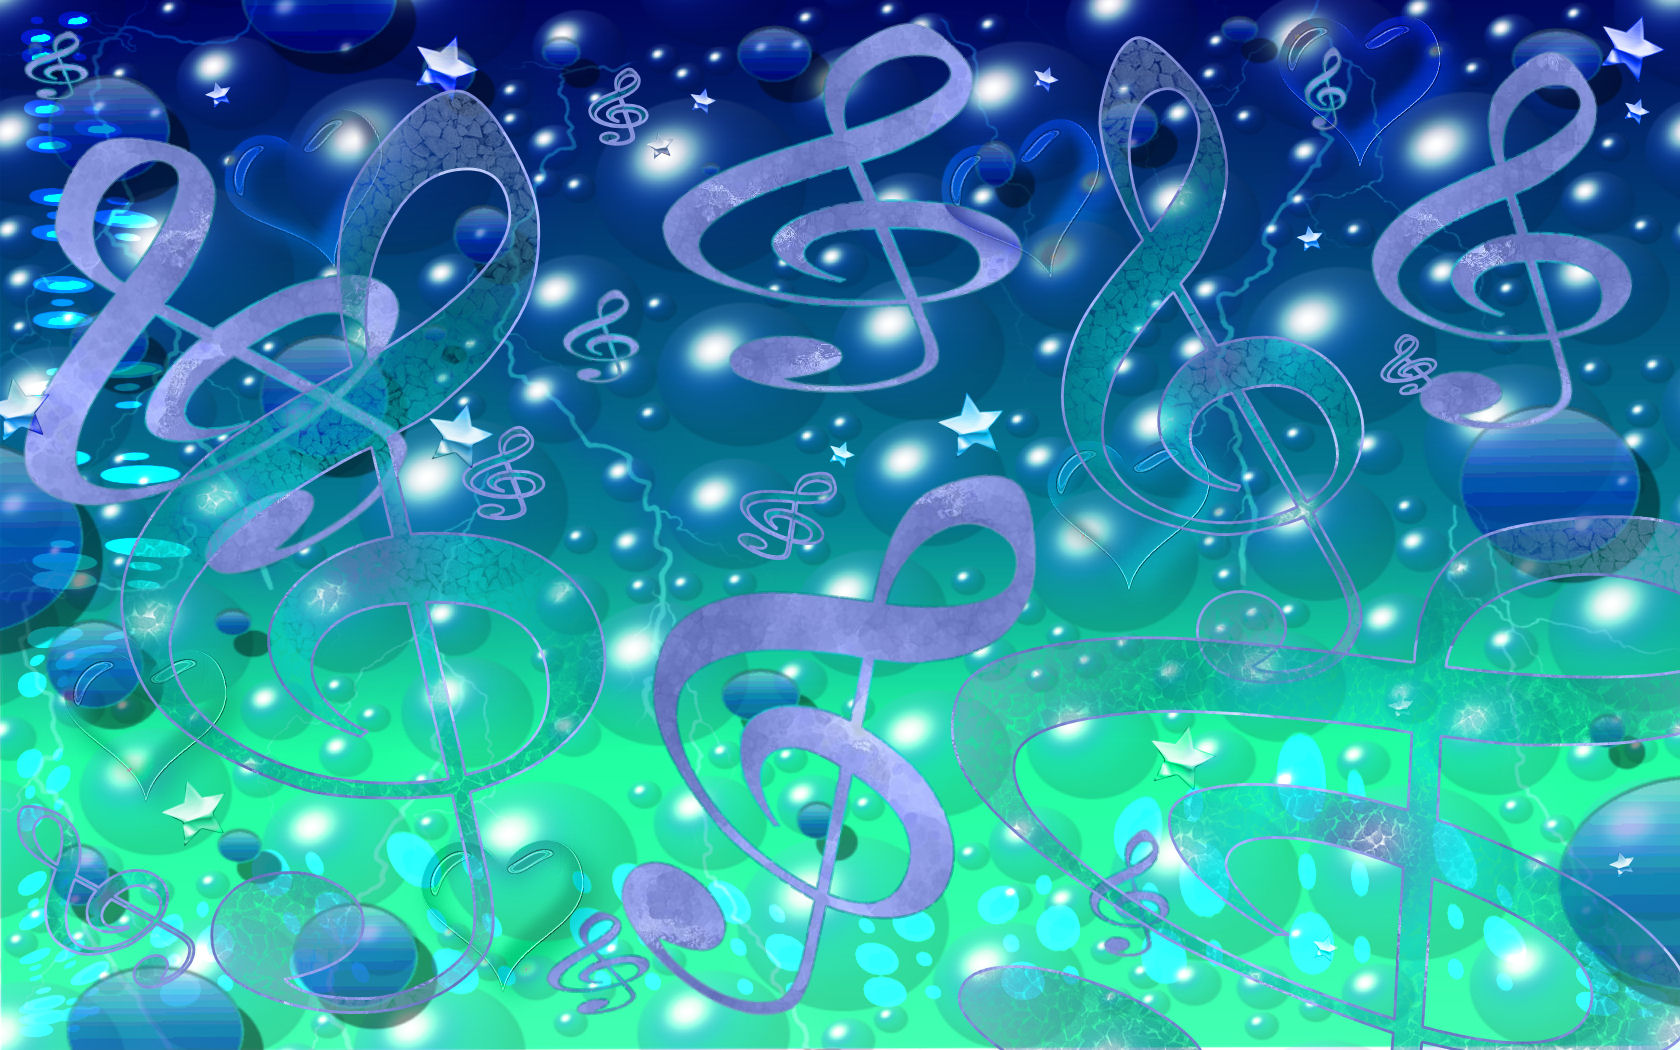 sookie blue music wallpaper 2 by sookiesooker on deviantart